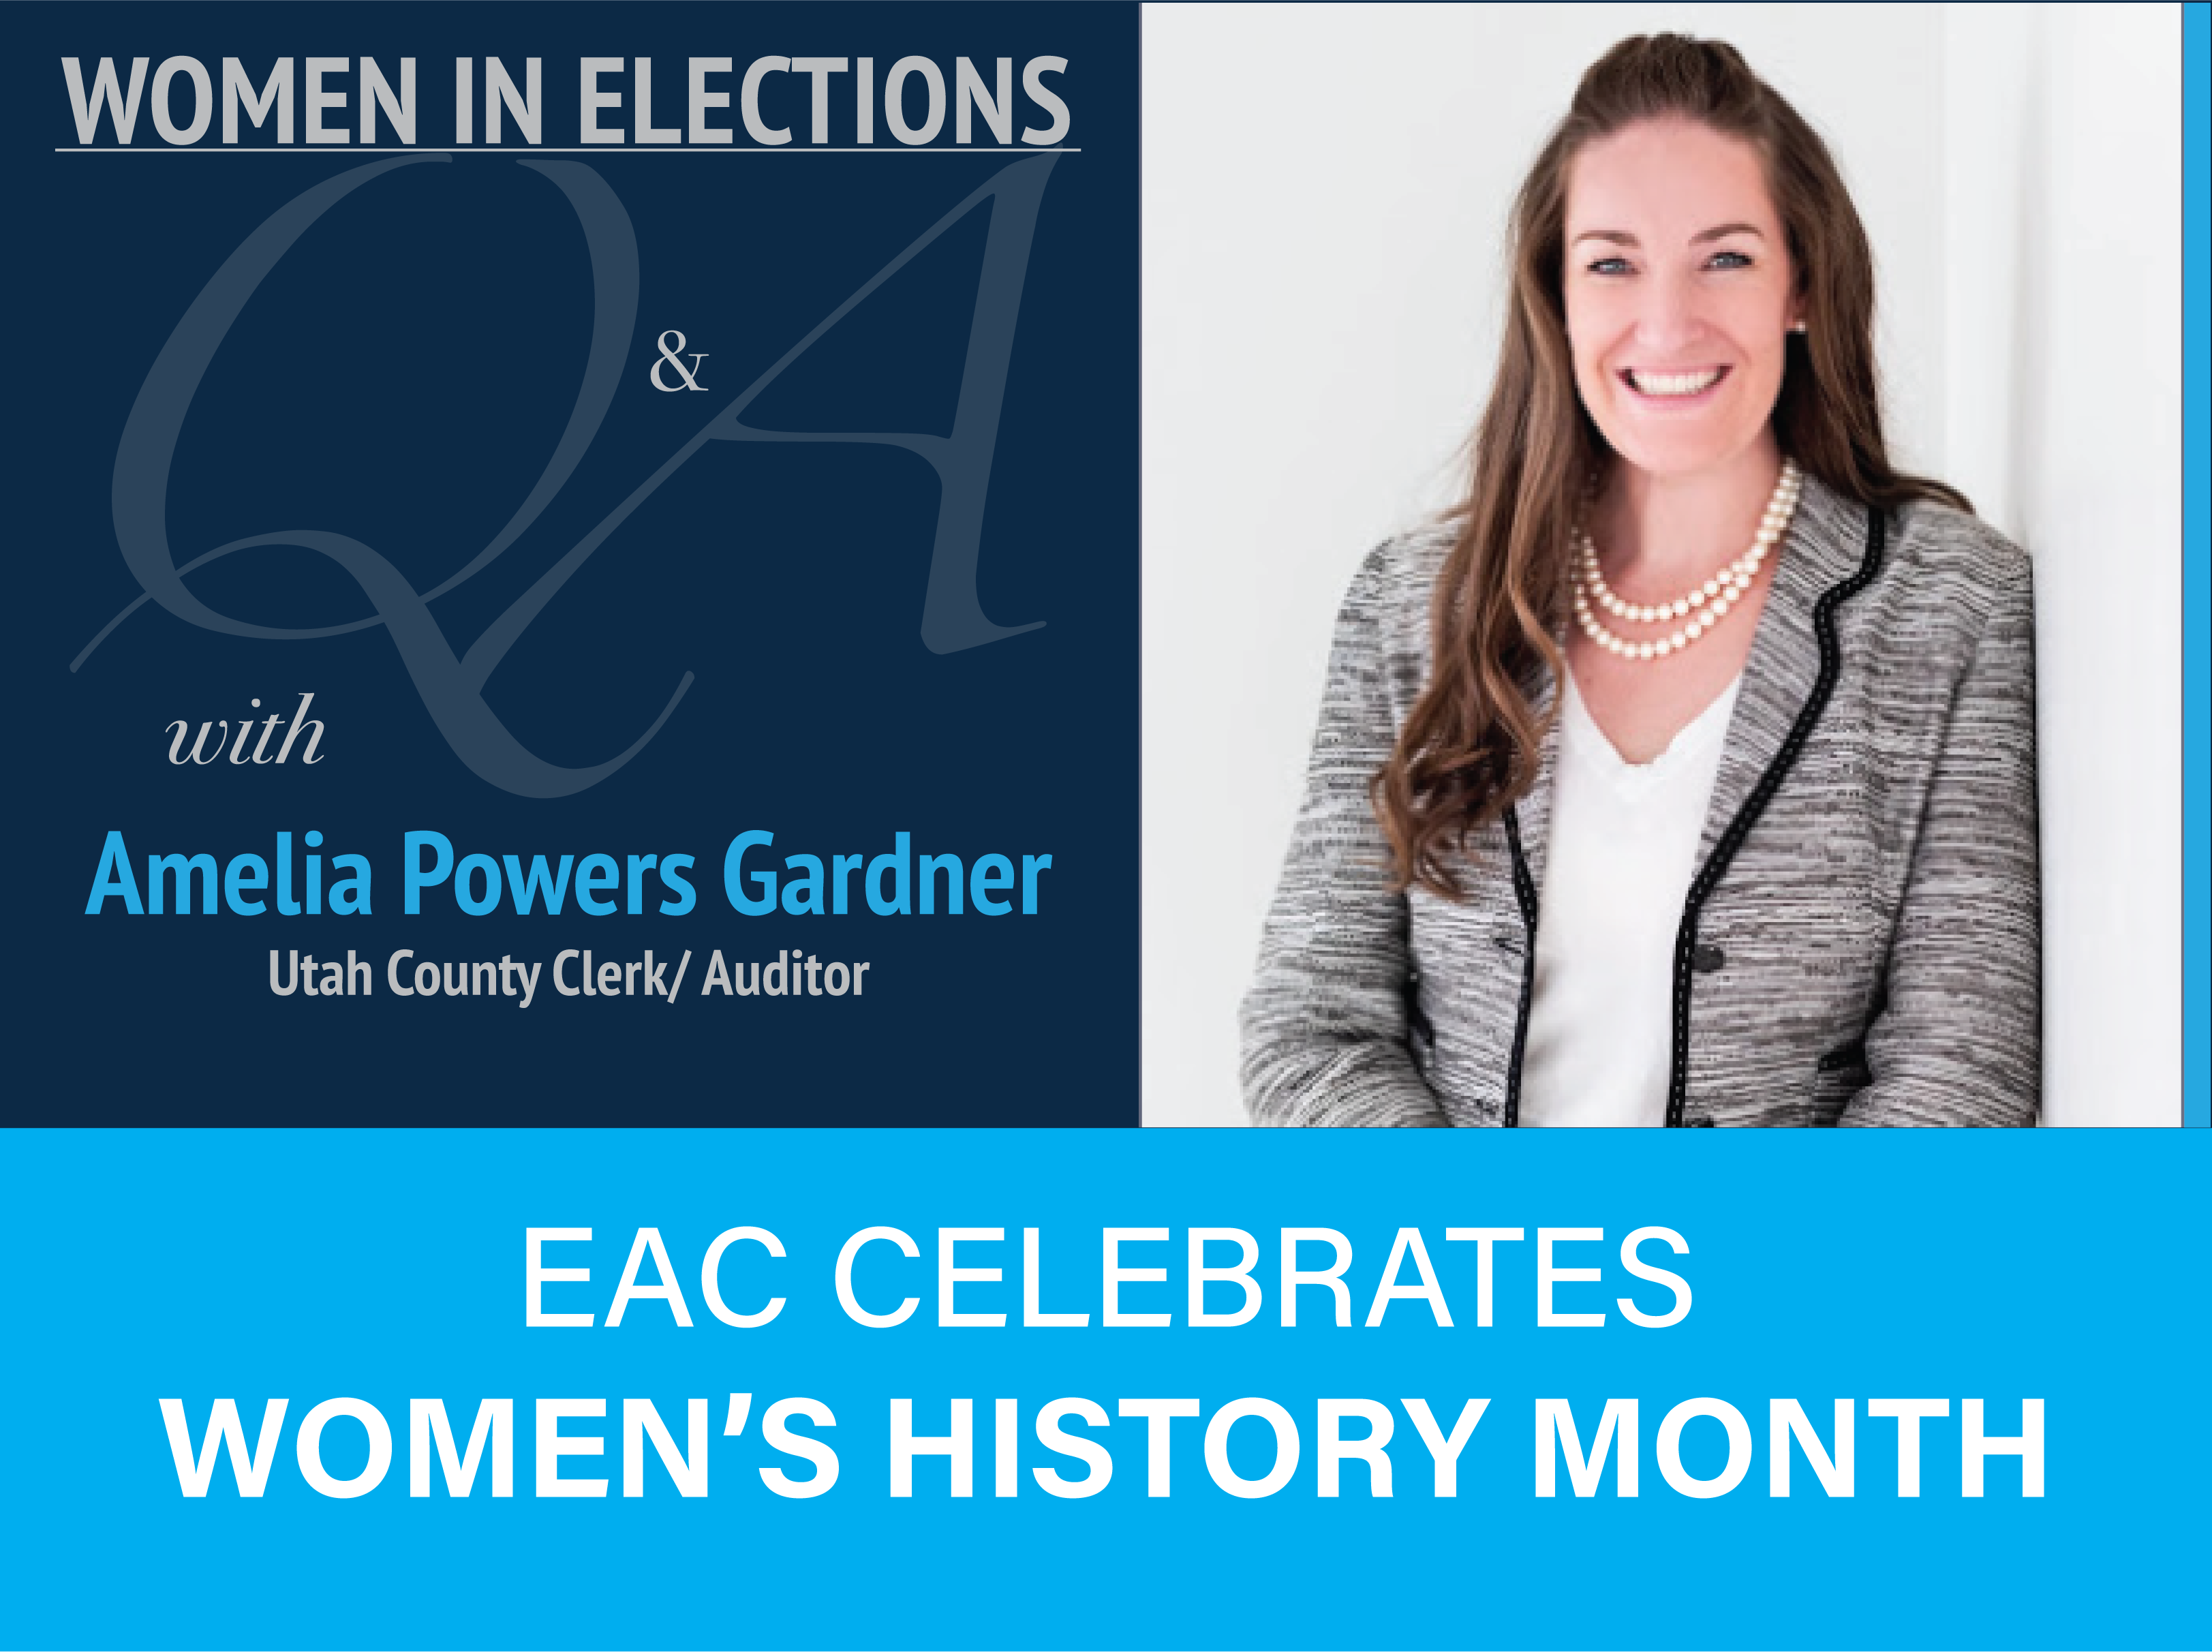 Women in Elections Q and A Series with Amelia Powers Gardner Utah County Clerk/ Auditor. EAC Celebrates Women's History Month